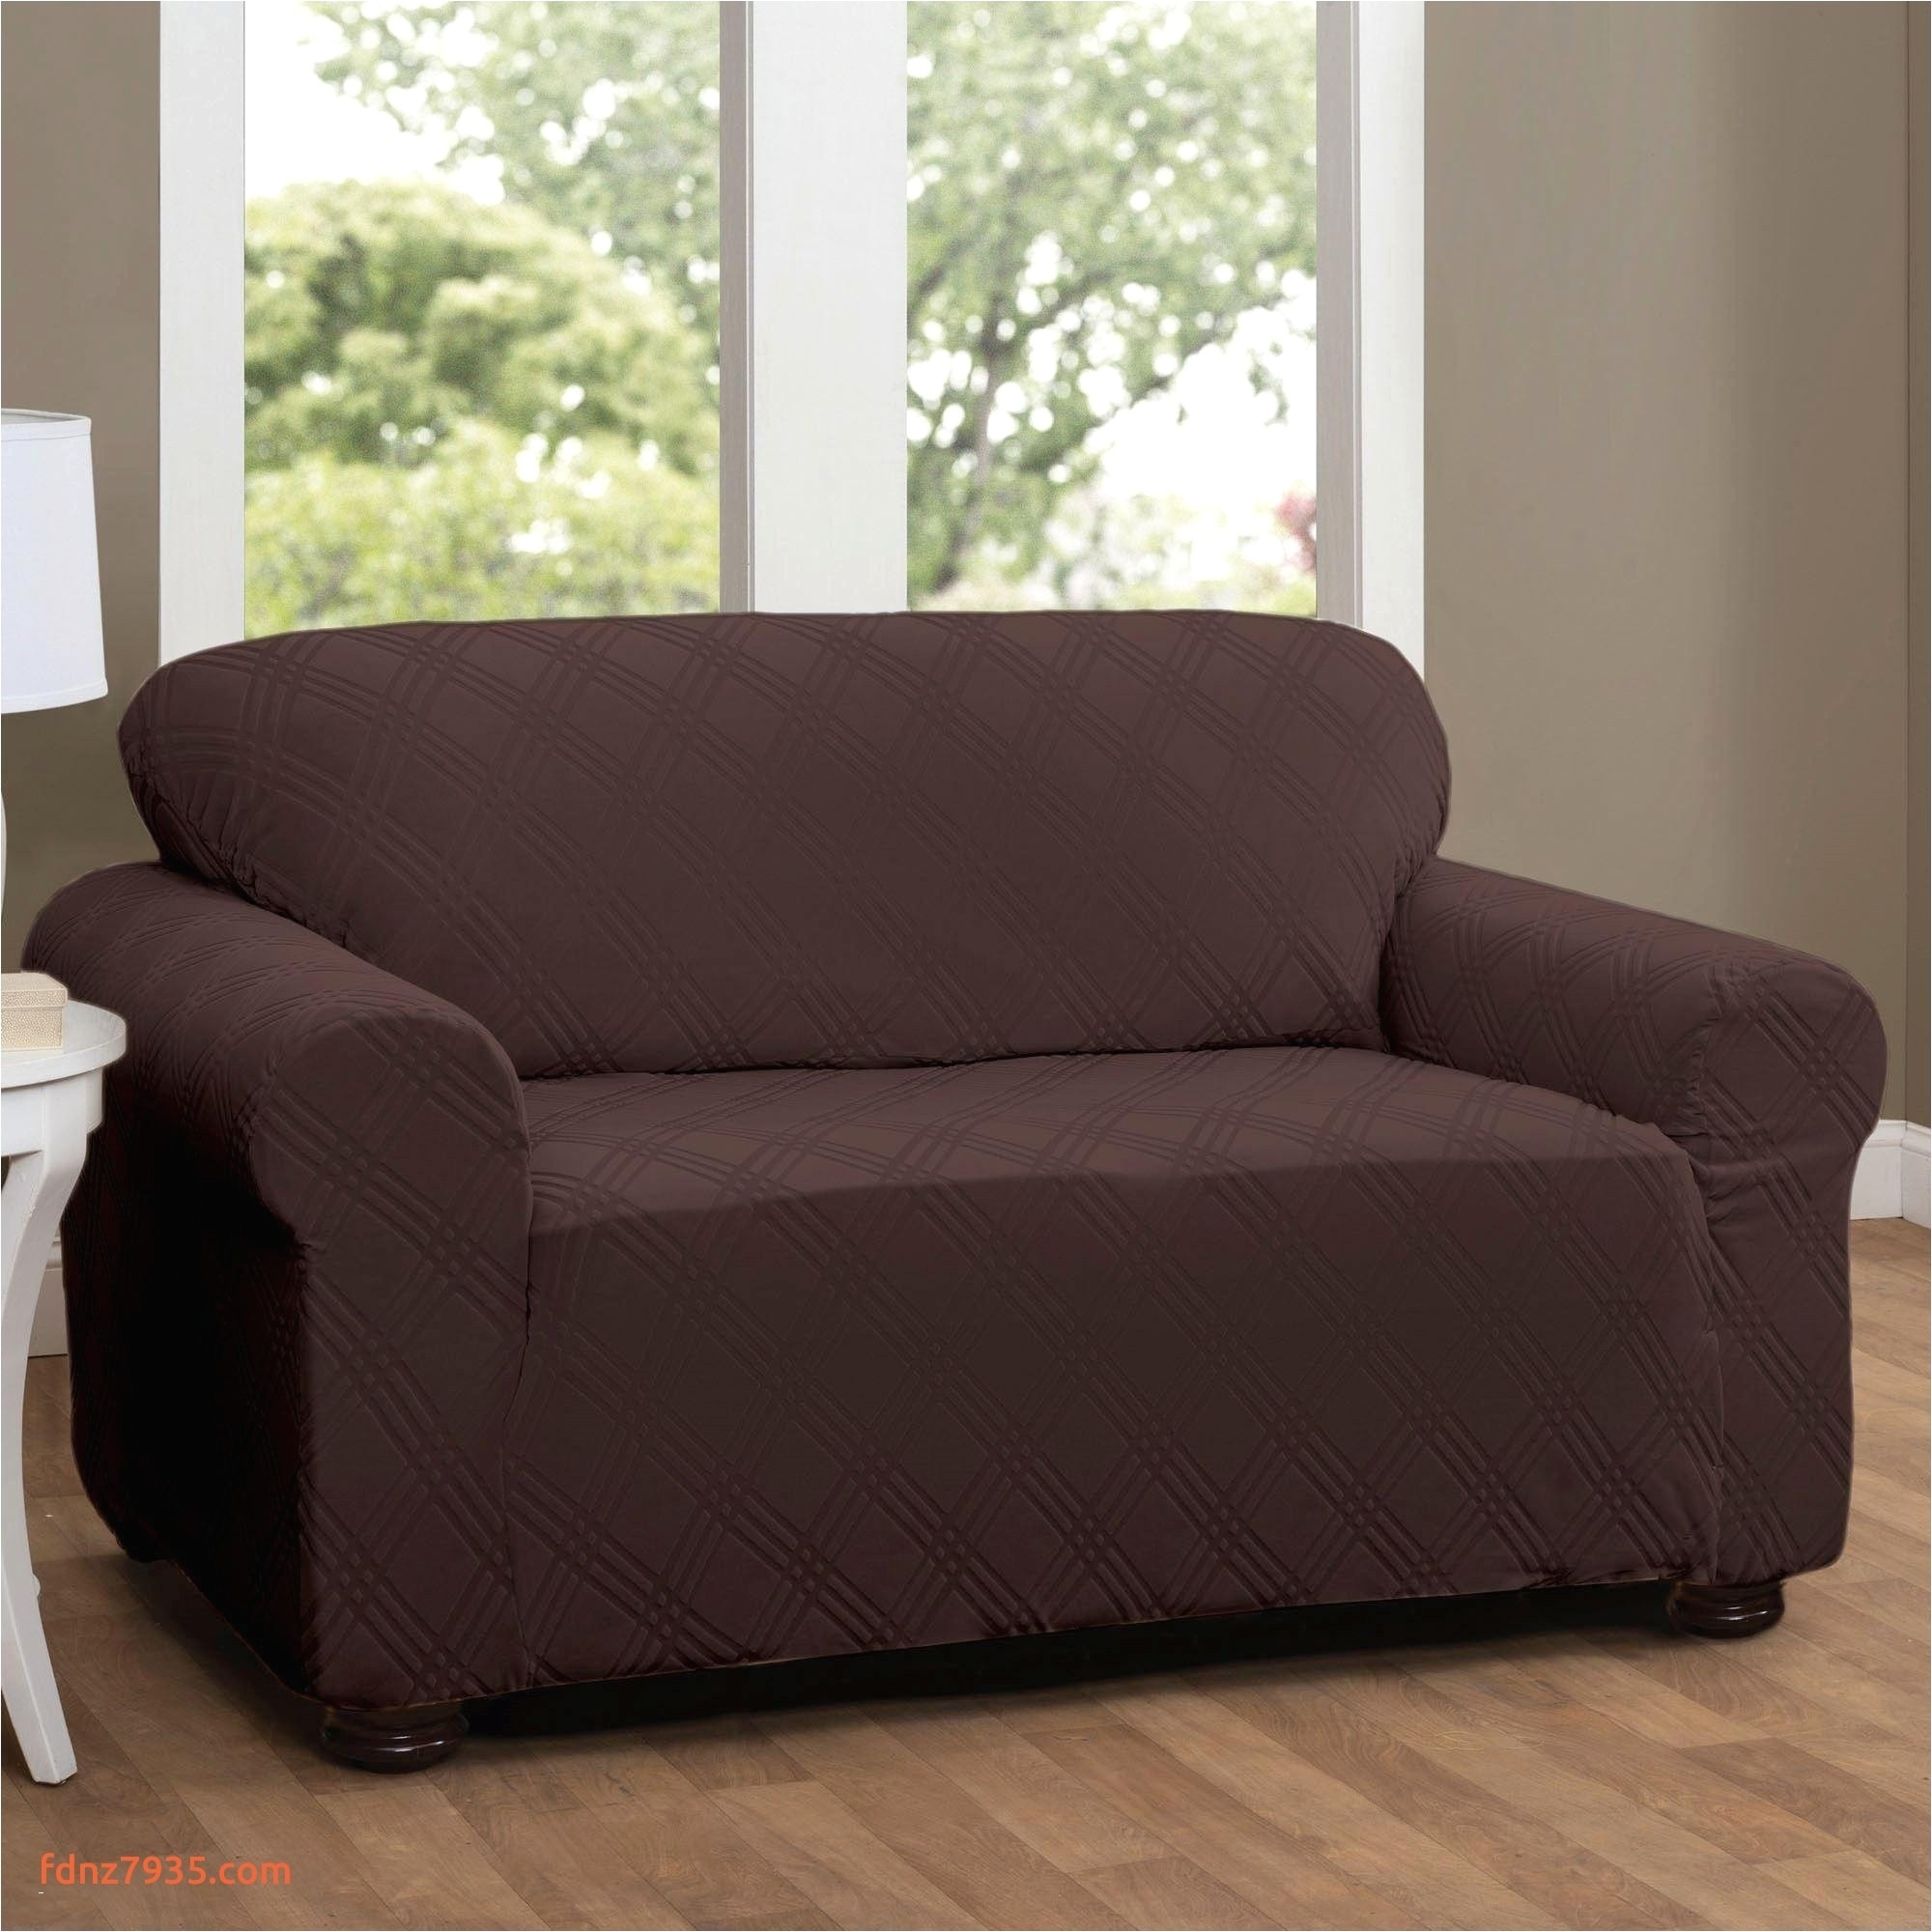 Corner Sleeper Sofa Bed – Home Decor 88 In Arrowmask 2 Piece Sectionals With Sleeper & Left Facing Chaise (View 19 of 25)